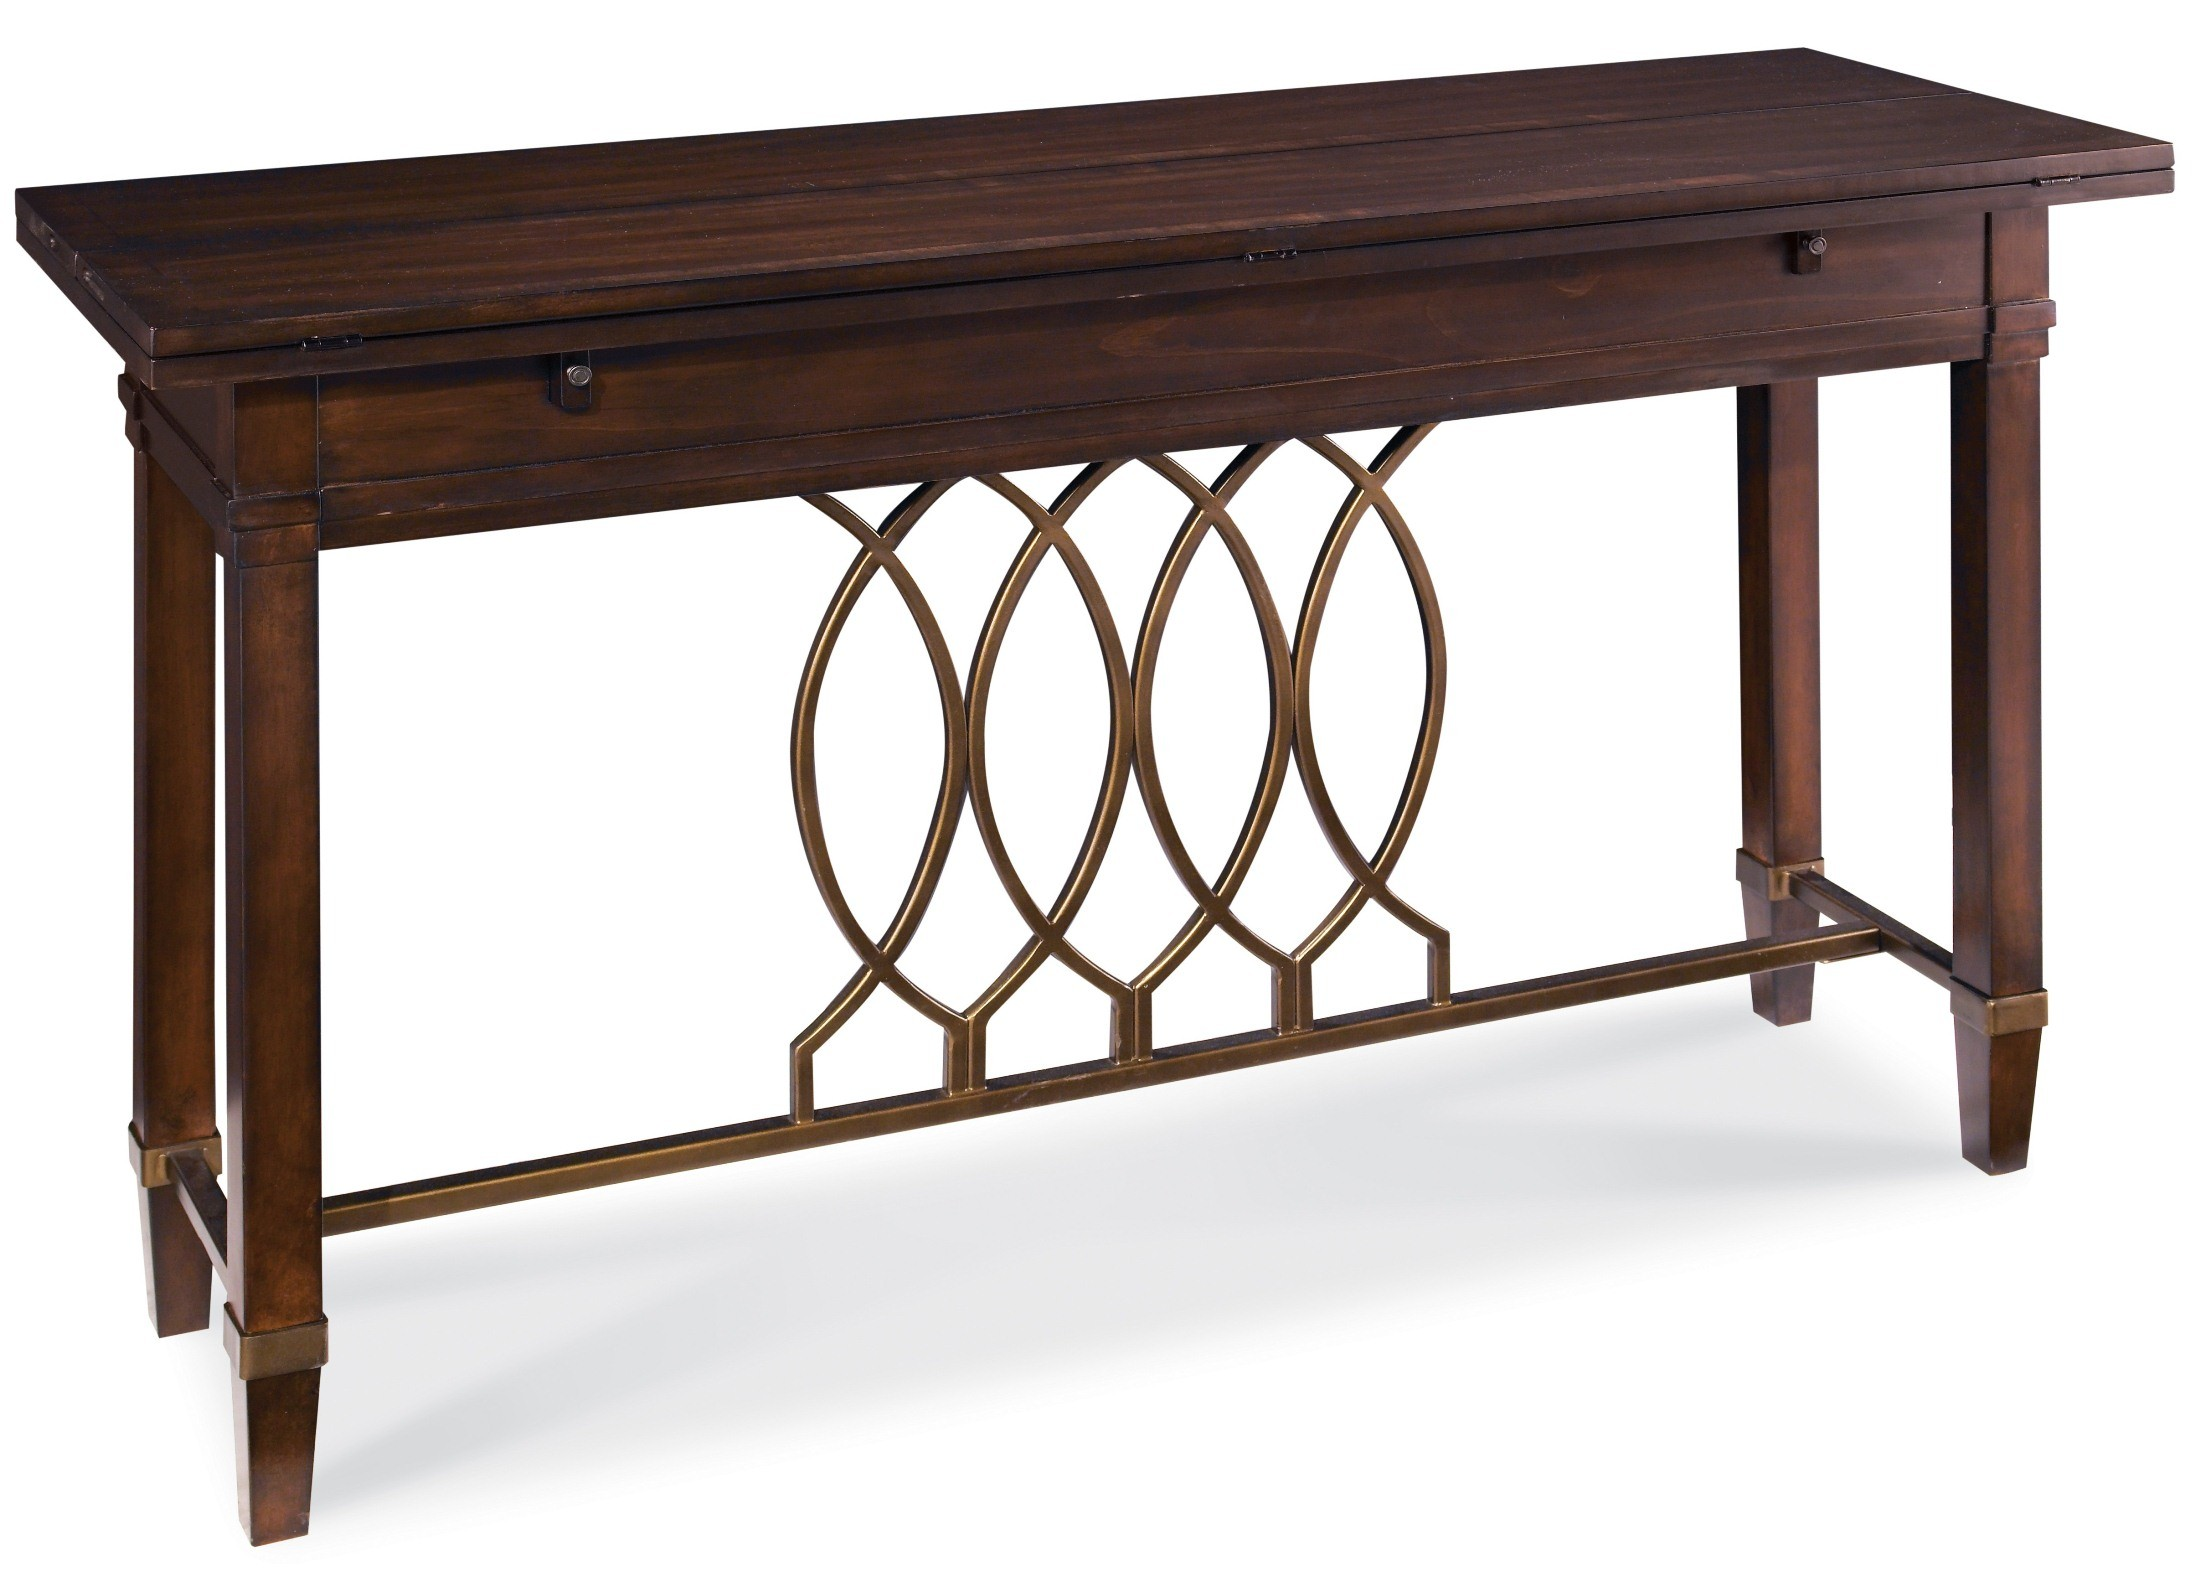 Intrigue flip top sofa table from art 161307 2636 for 5 sofa table